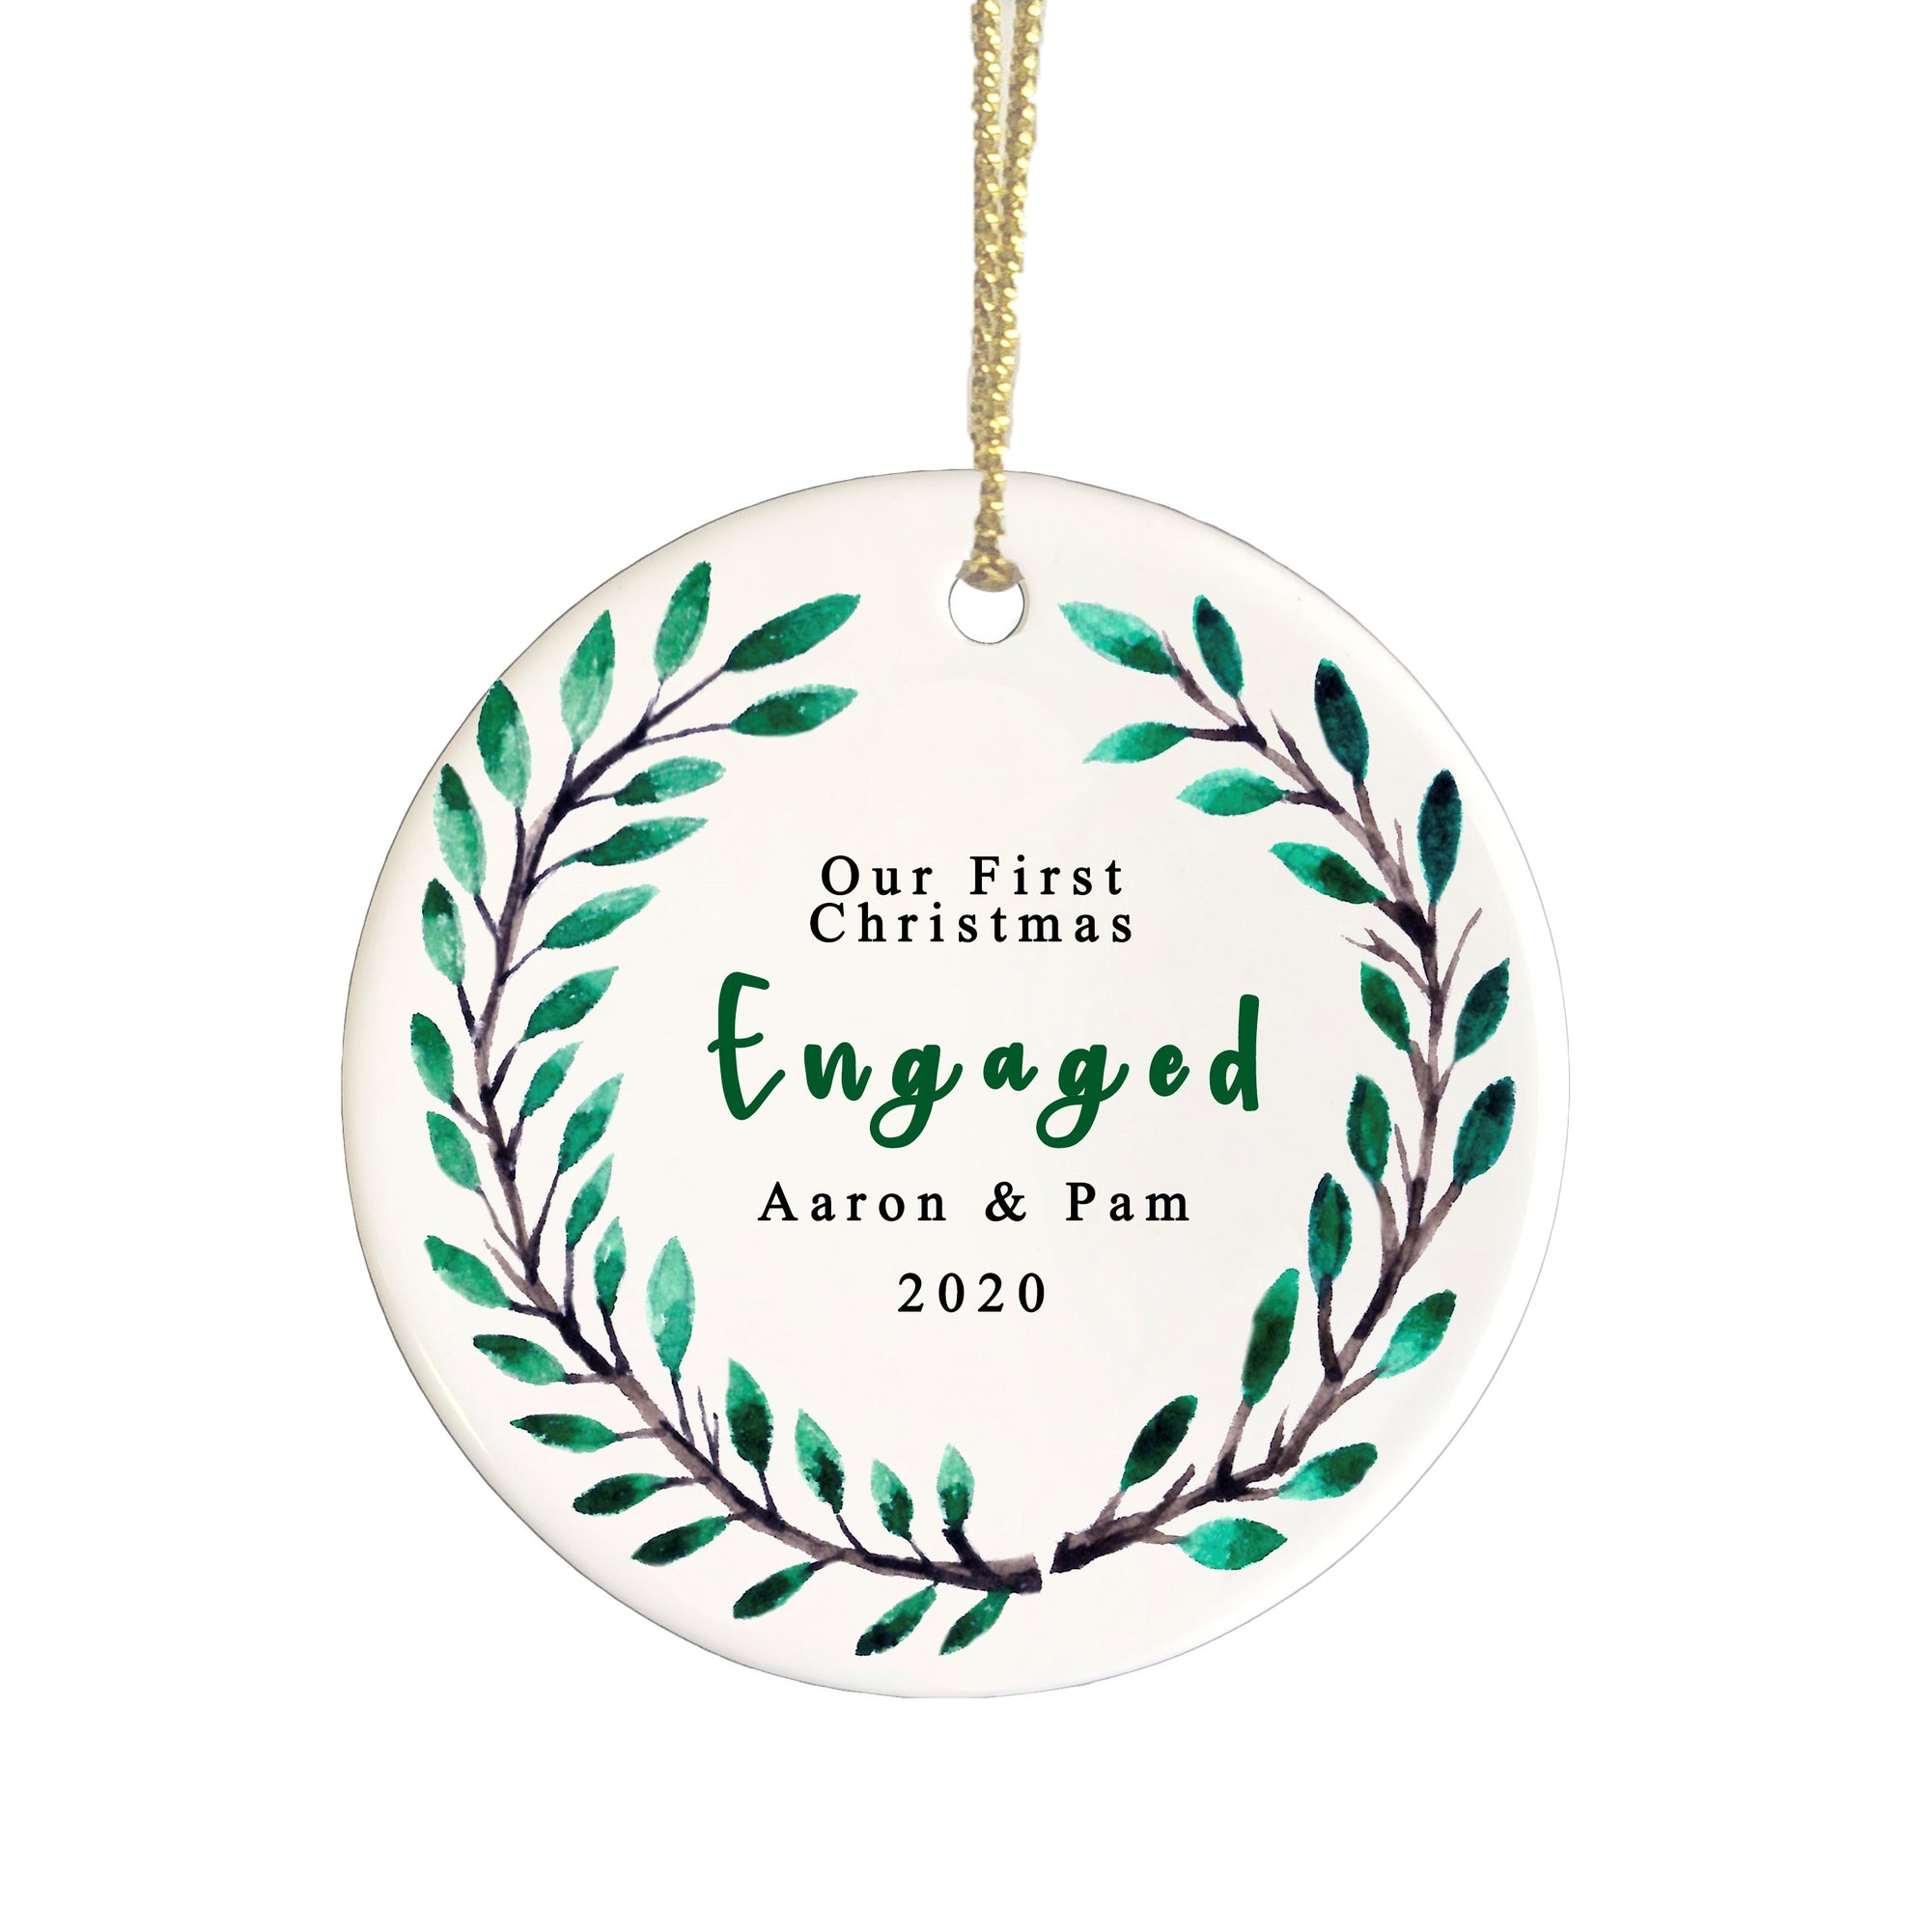 Our 1st Christmas Engaged ceramic ornament